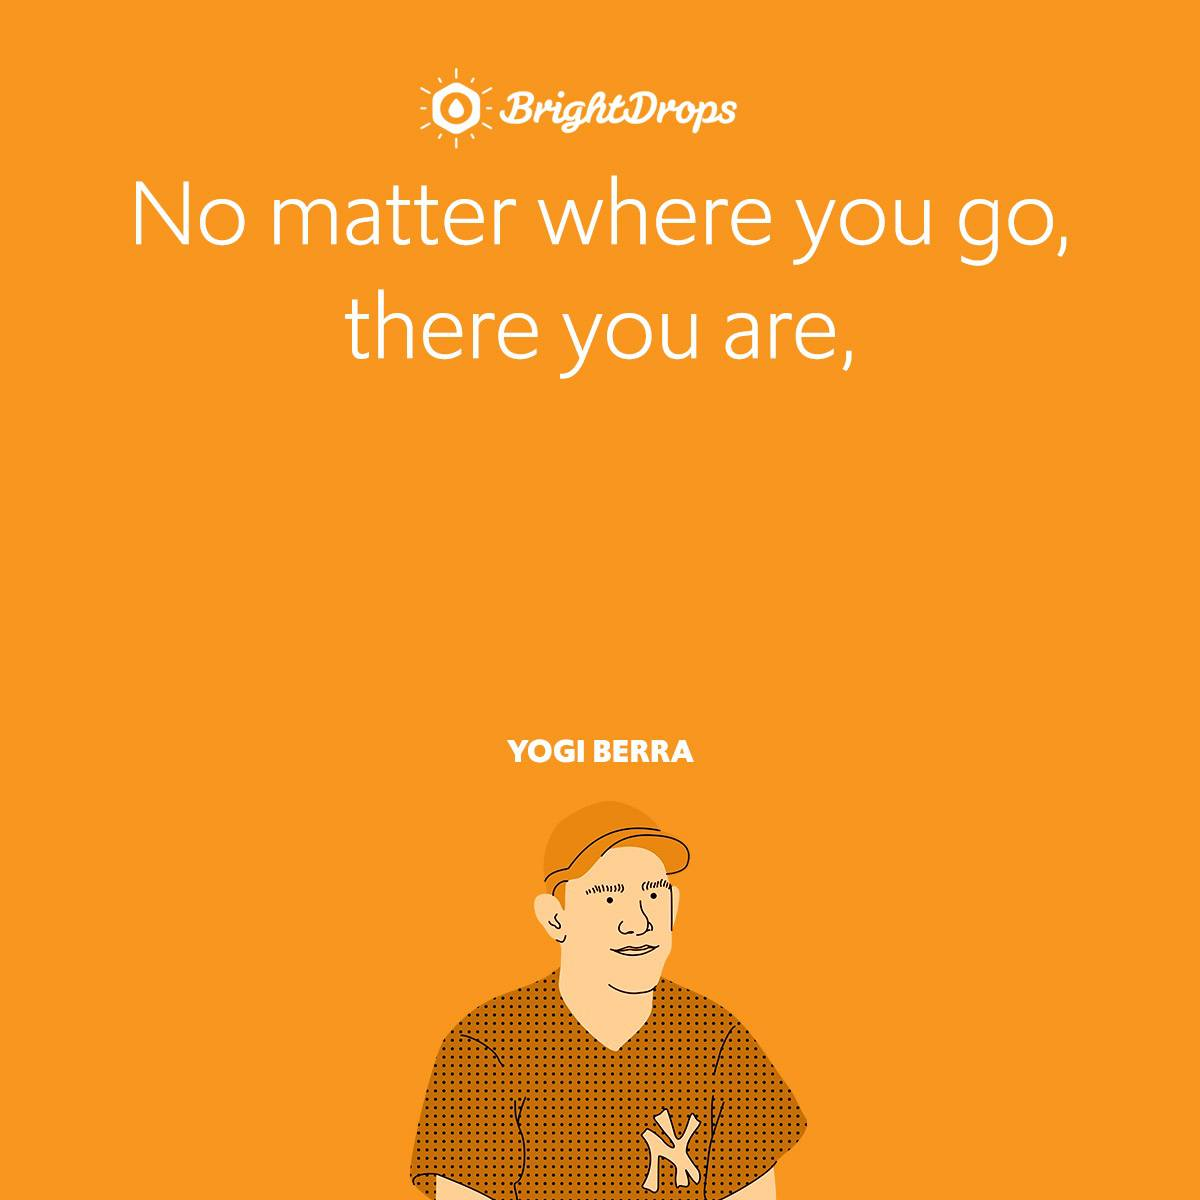 No matter where you go, there you are,